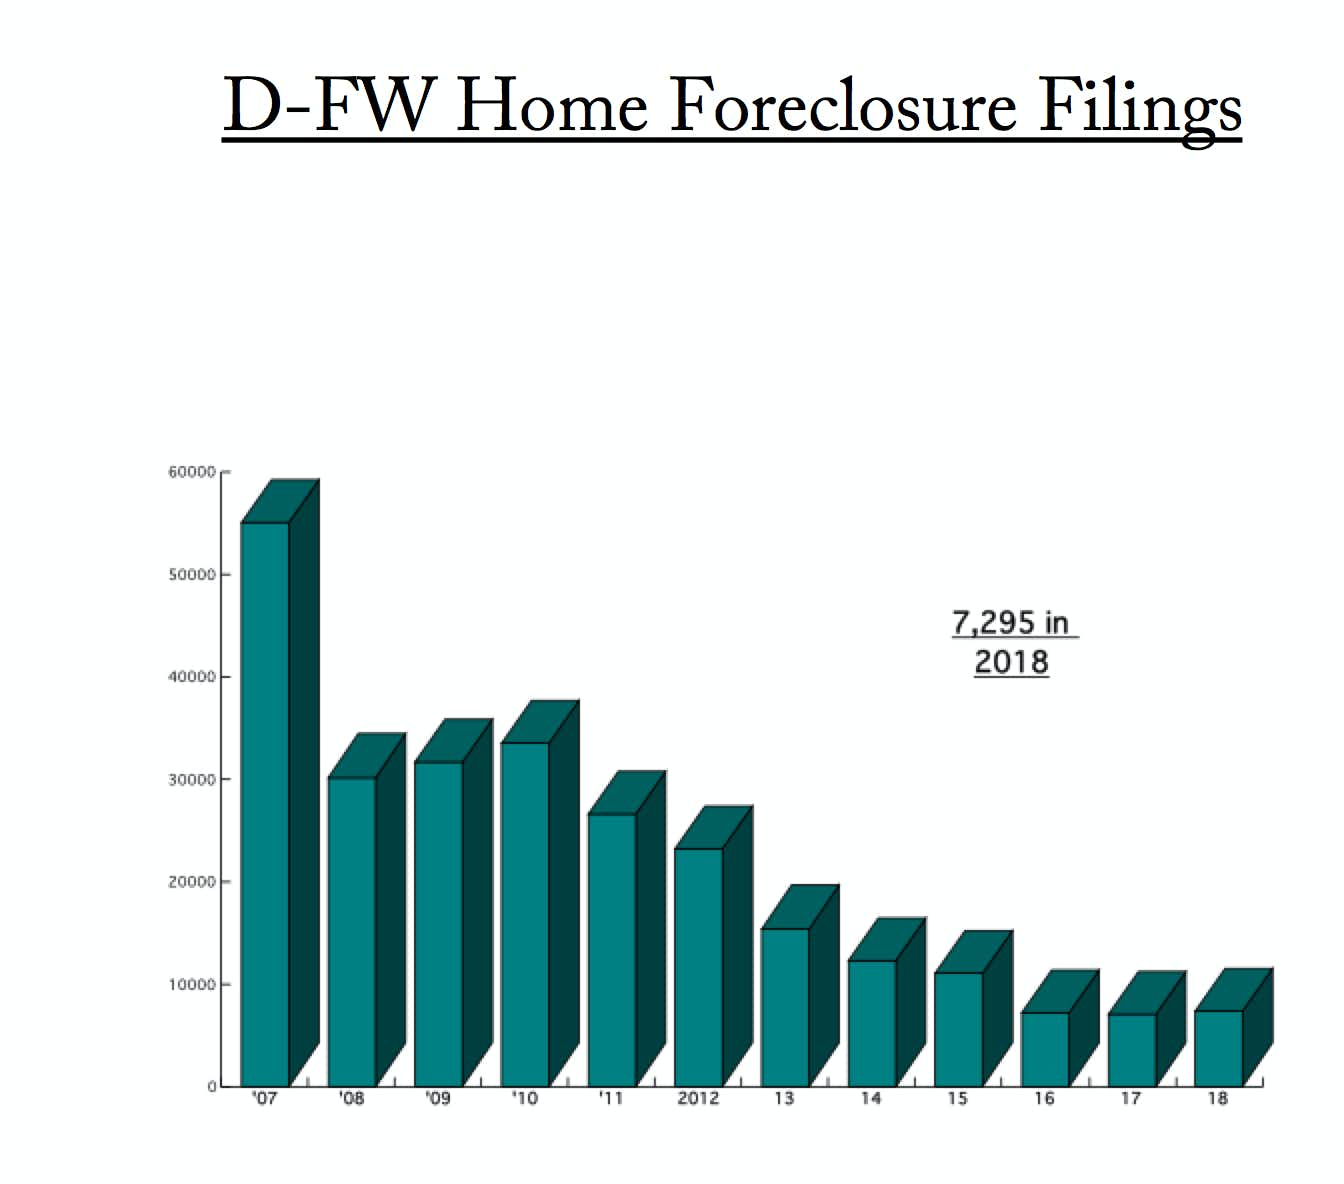 Home foreclosure filings are up in D-FW and Texas